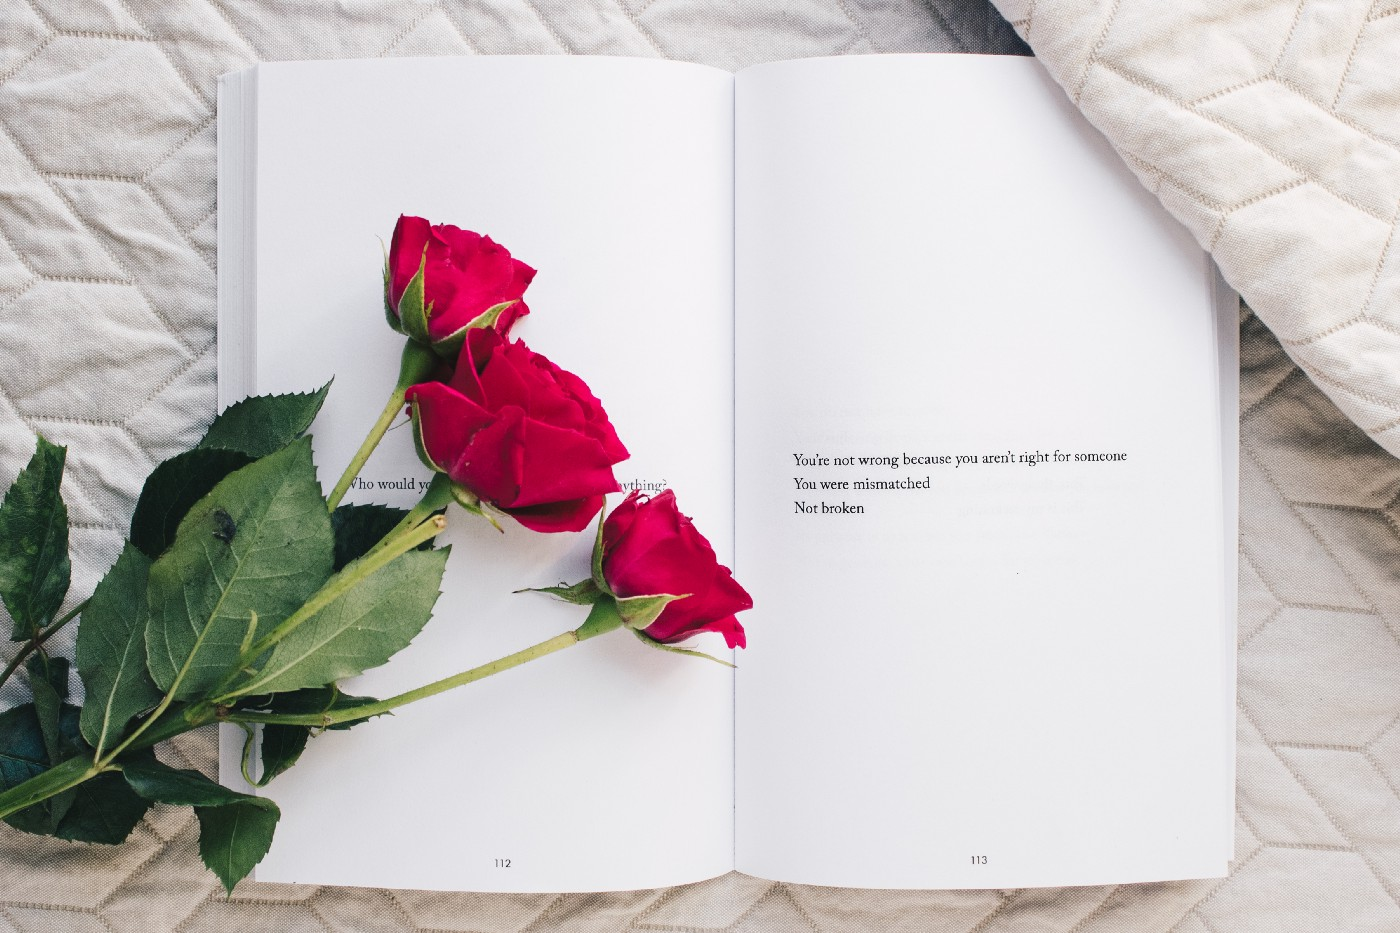 the image is that of a book with white pages nestled with three red roses on it.